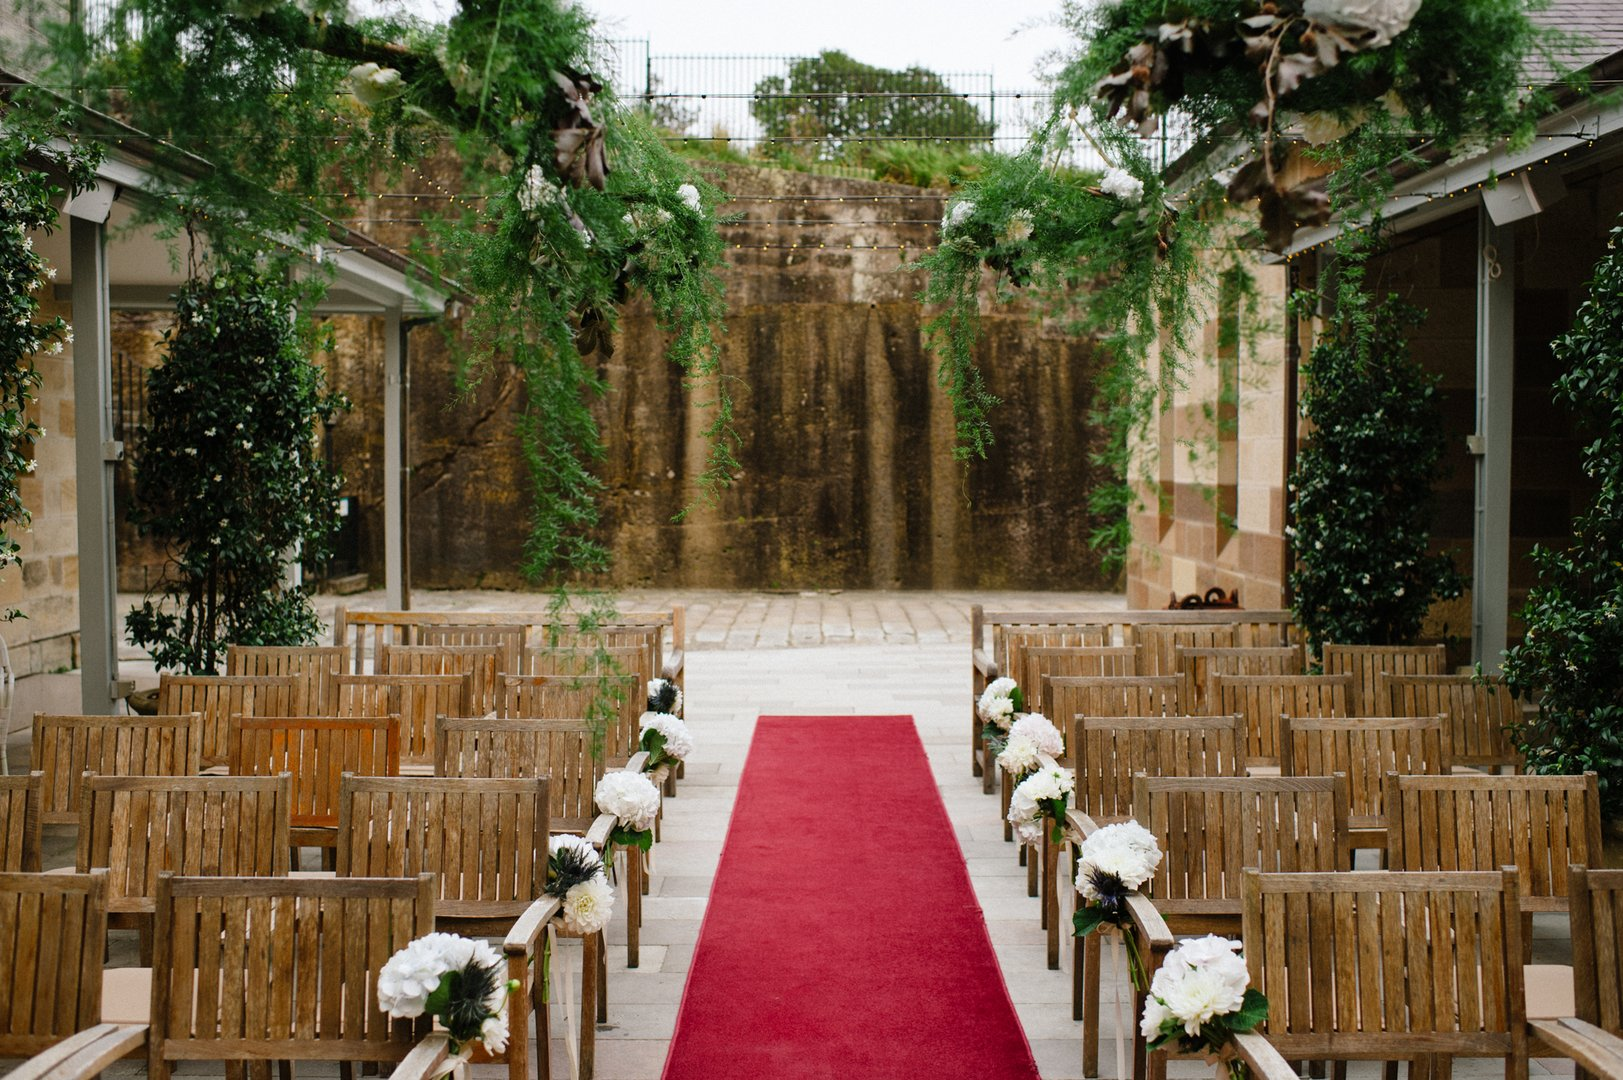 Gunners' Barracks Wedding Venue